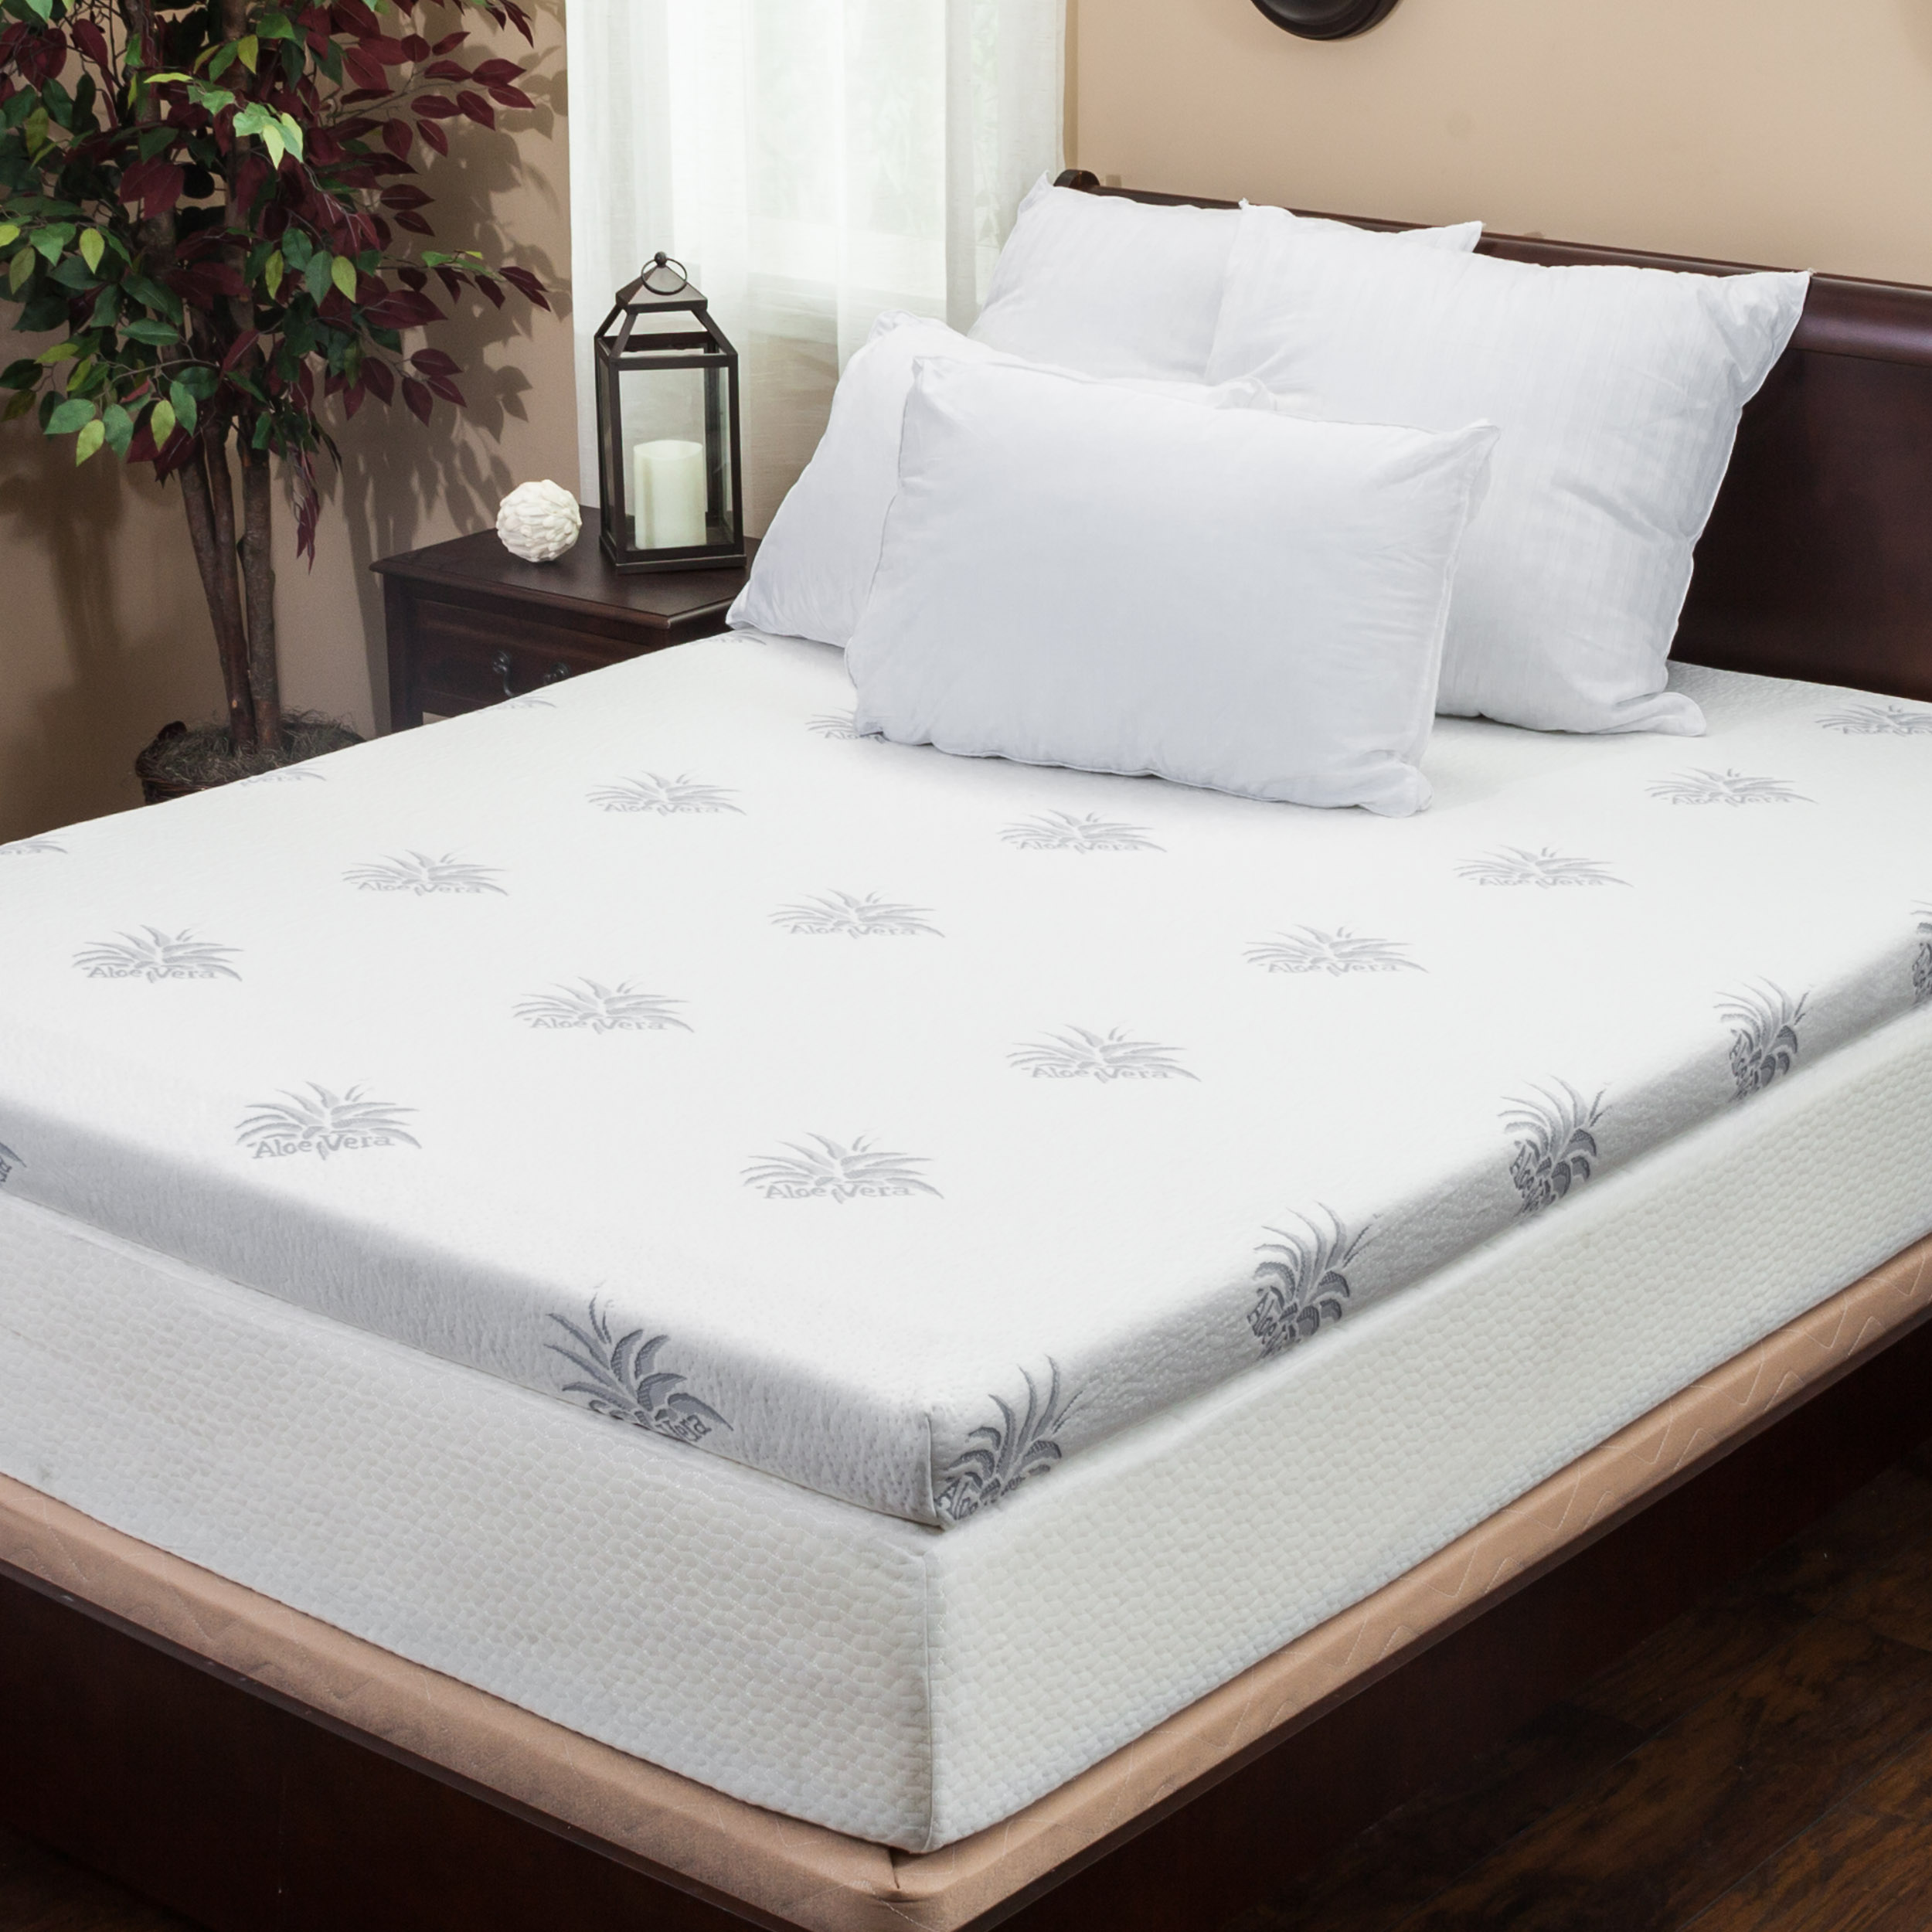 classic brands gel mattress within topper cool sofa foam memory bed